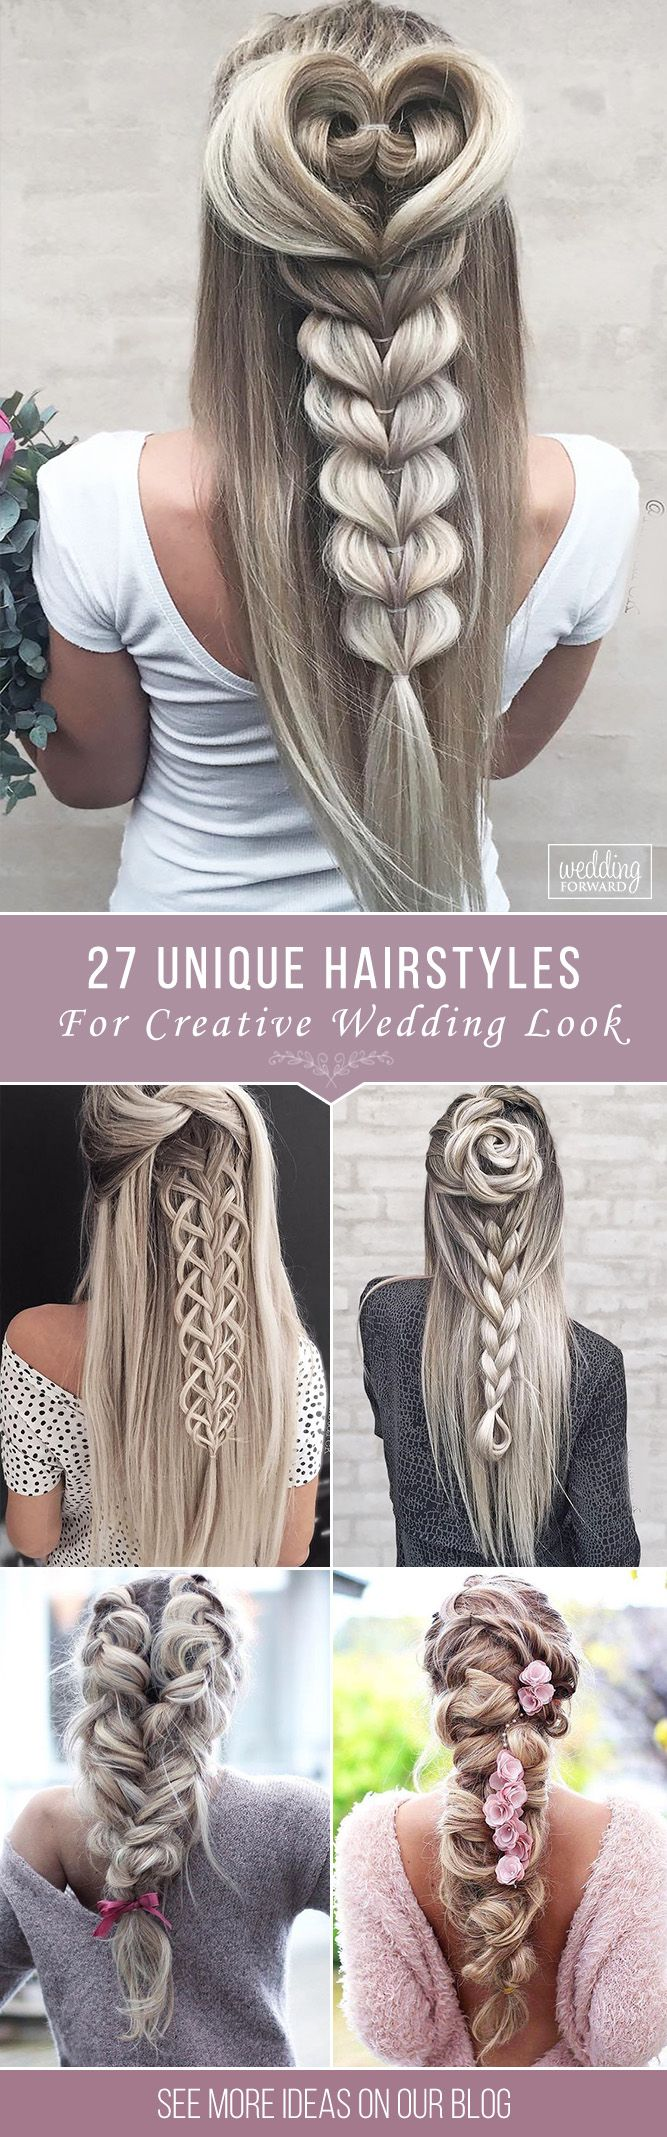 prom hair styles for best 25 unique hairstyles ideas on hairstyle 6553